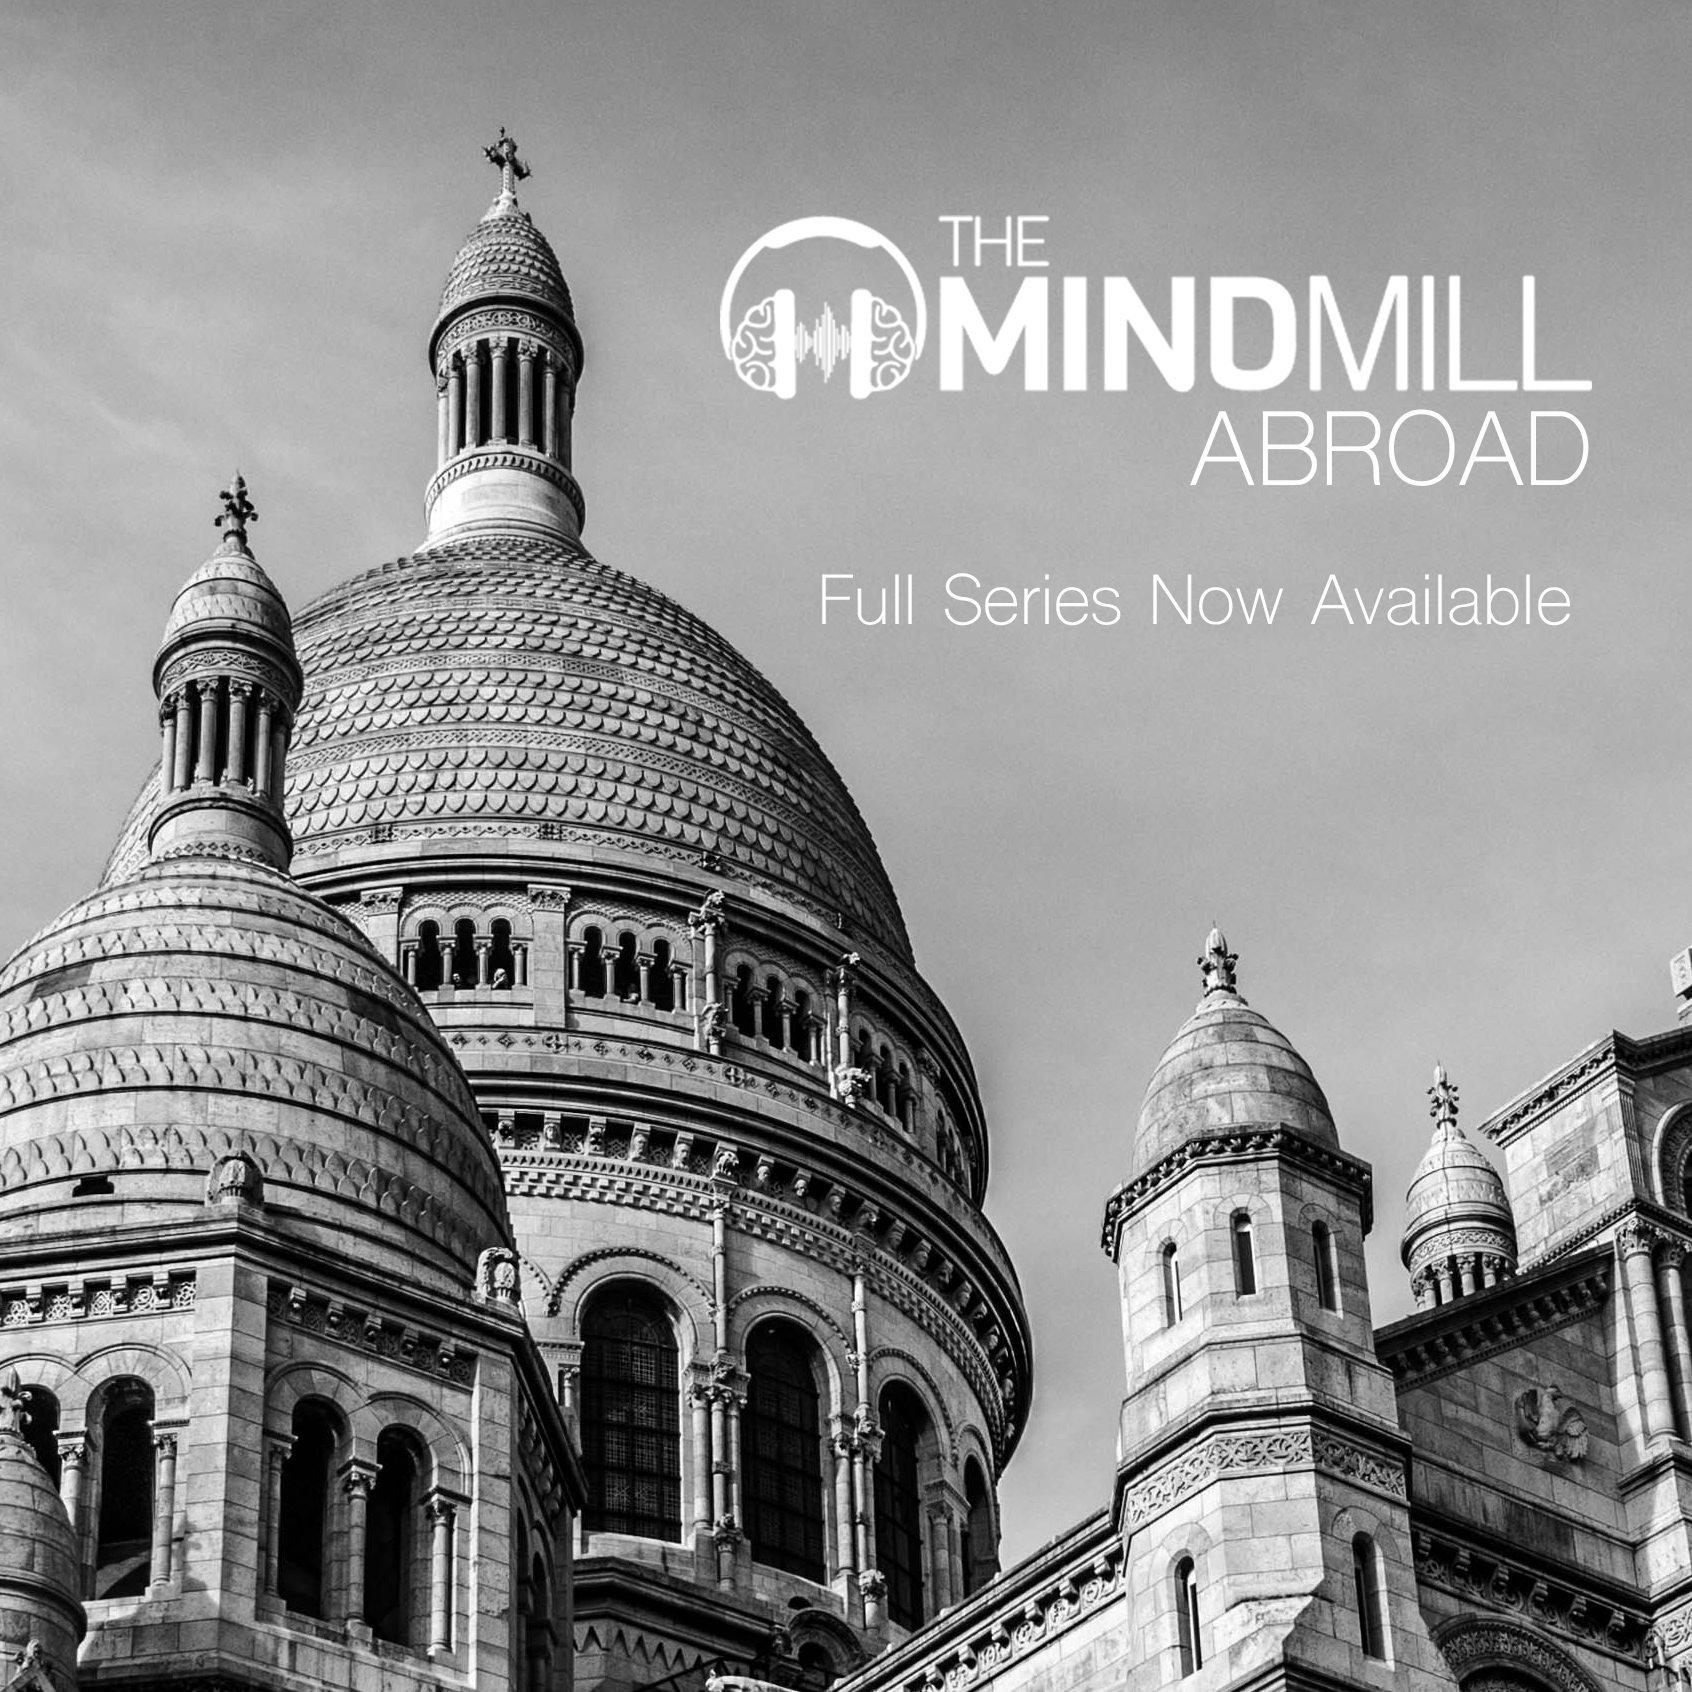 The Mindmill Abroad Full Series Now Available!